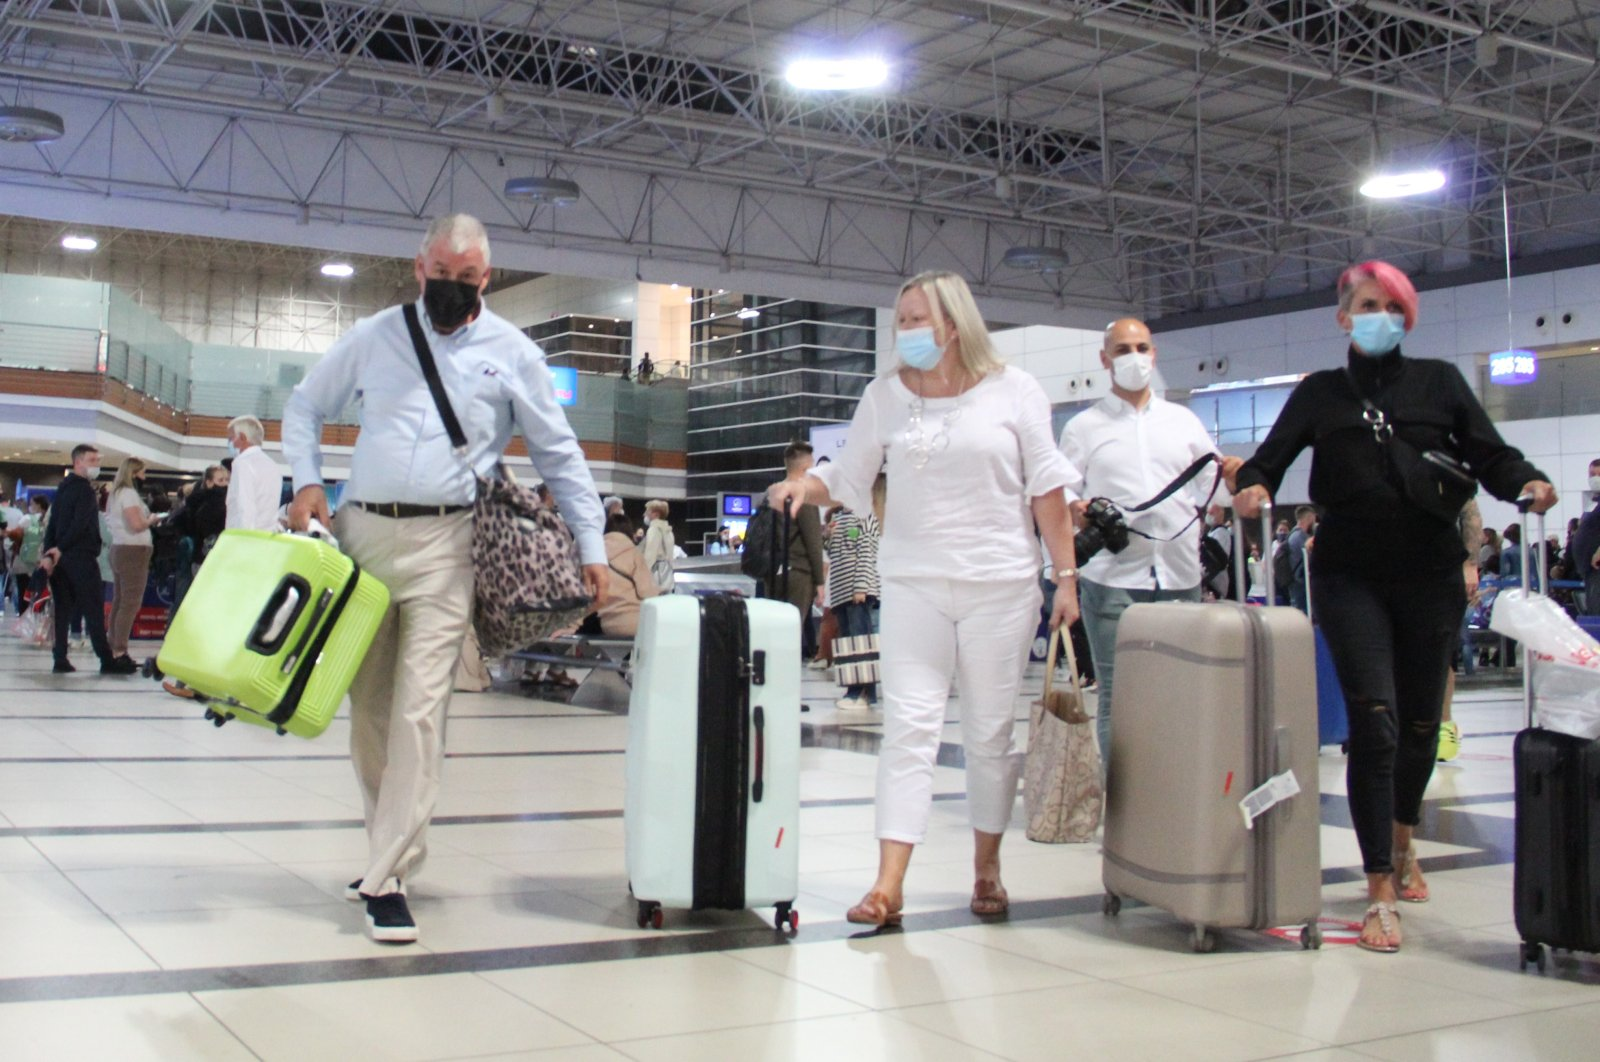 British tourists arrive at an airport in the southern resort city of Antalya, Turkey, Sept. 23, 2021. (IHA Photo)